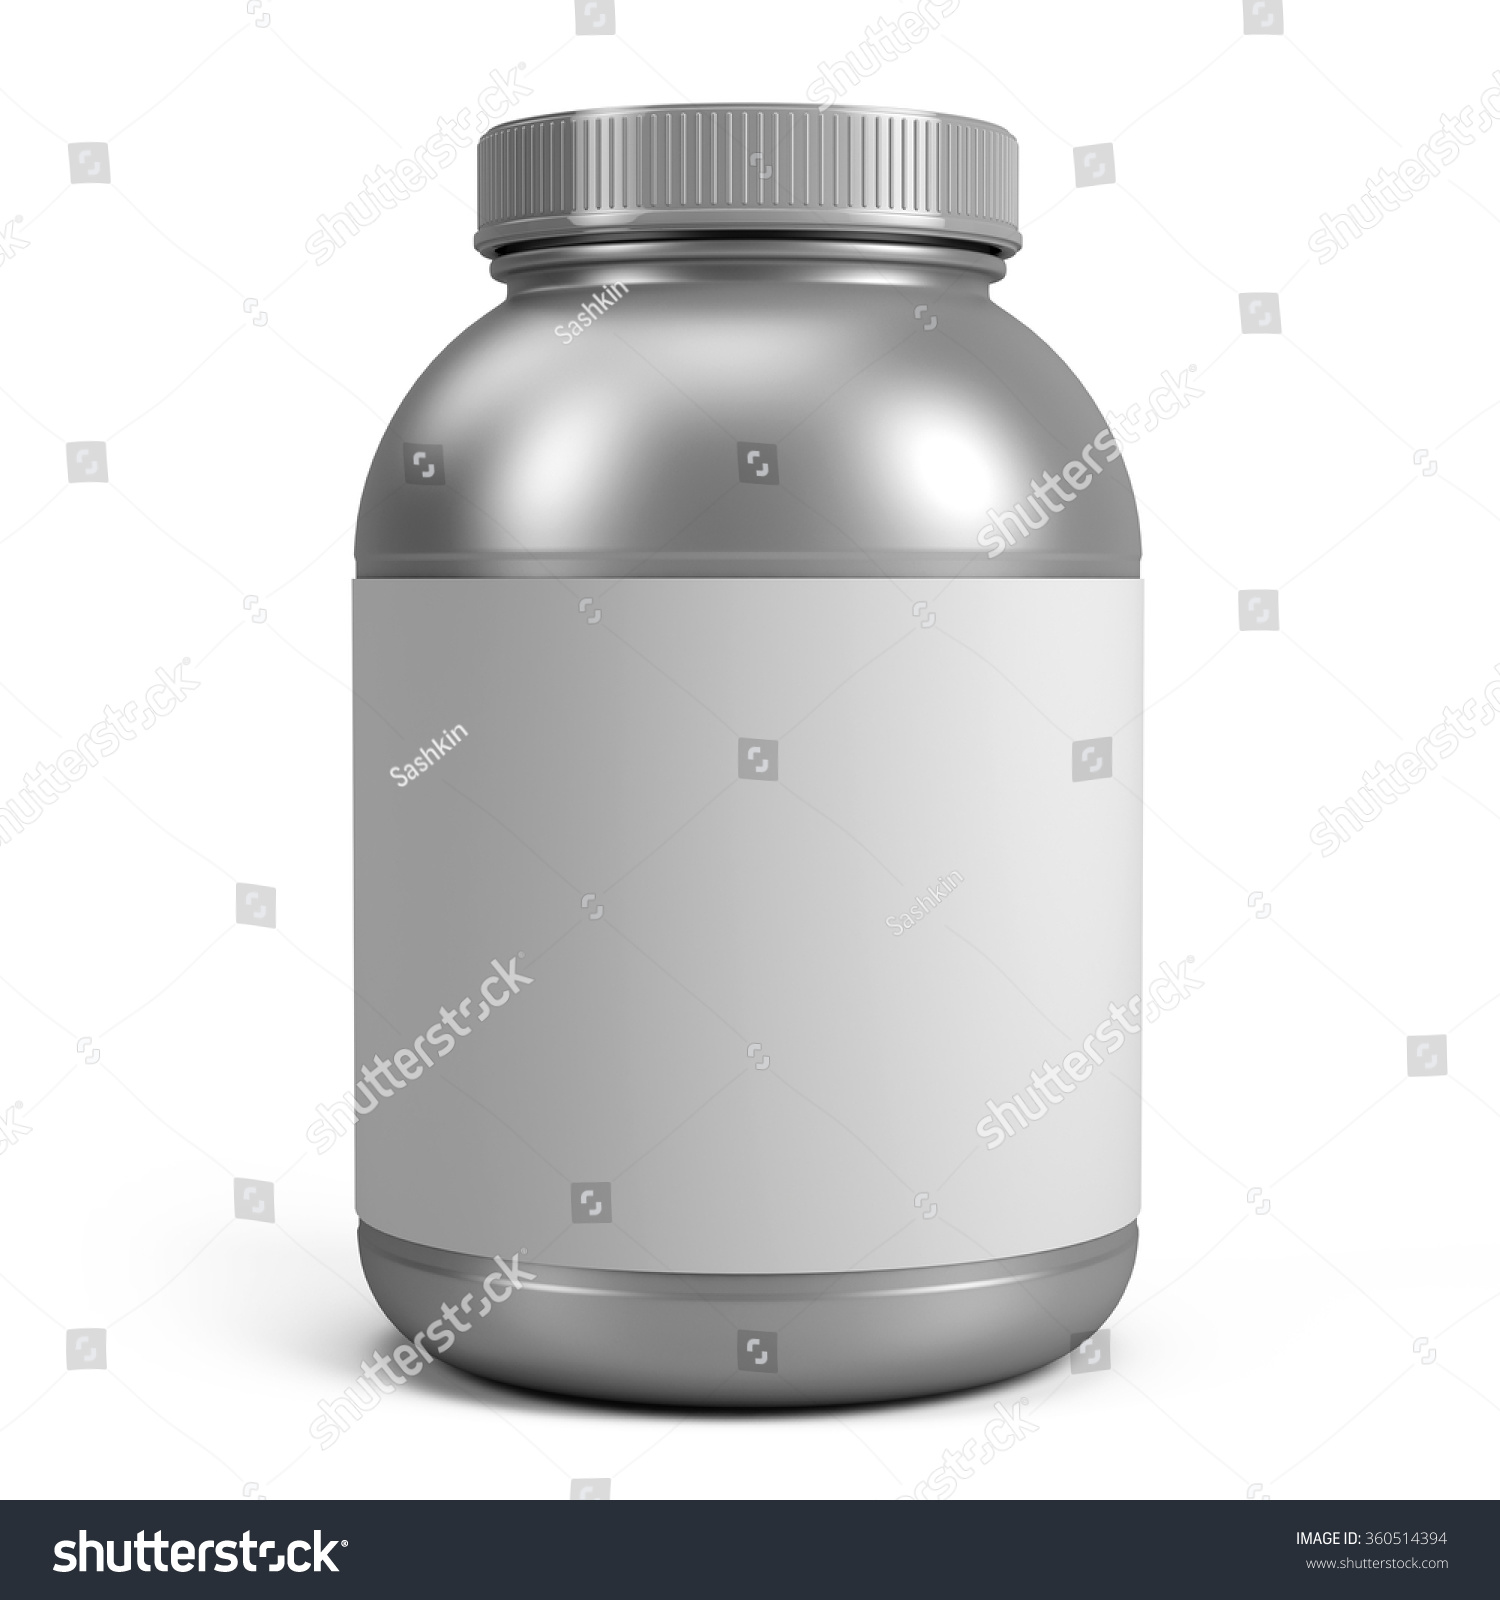 It's just a picture of Geeky White Label Protein Powder